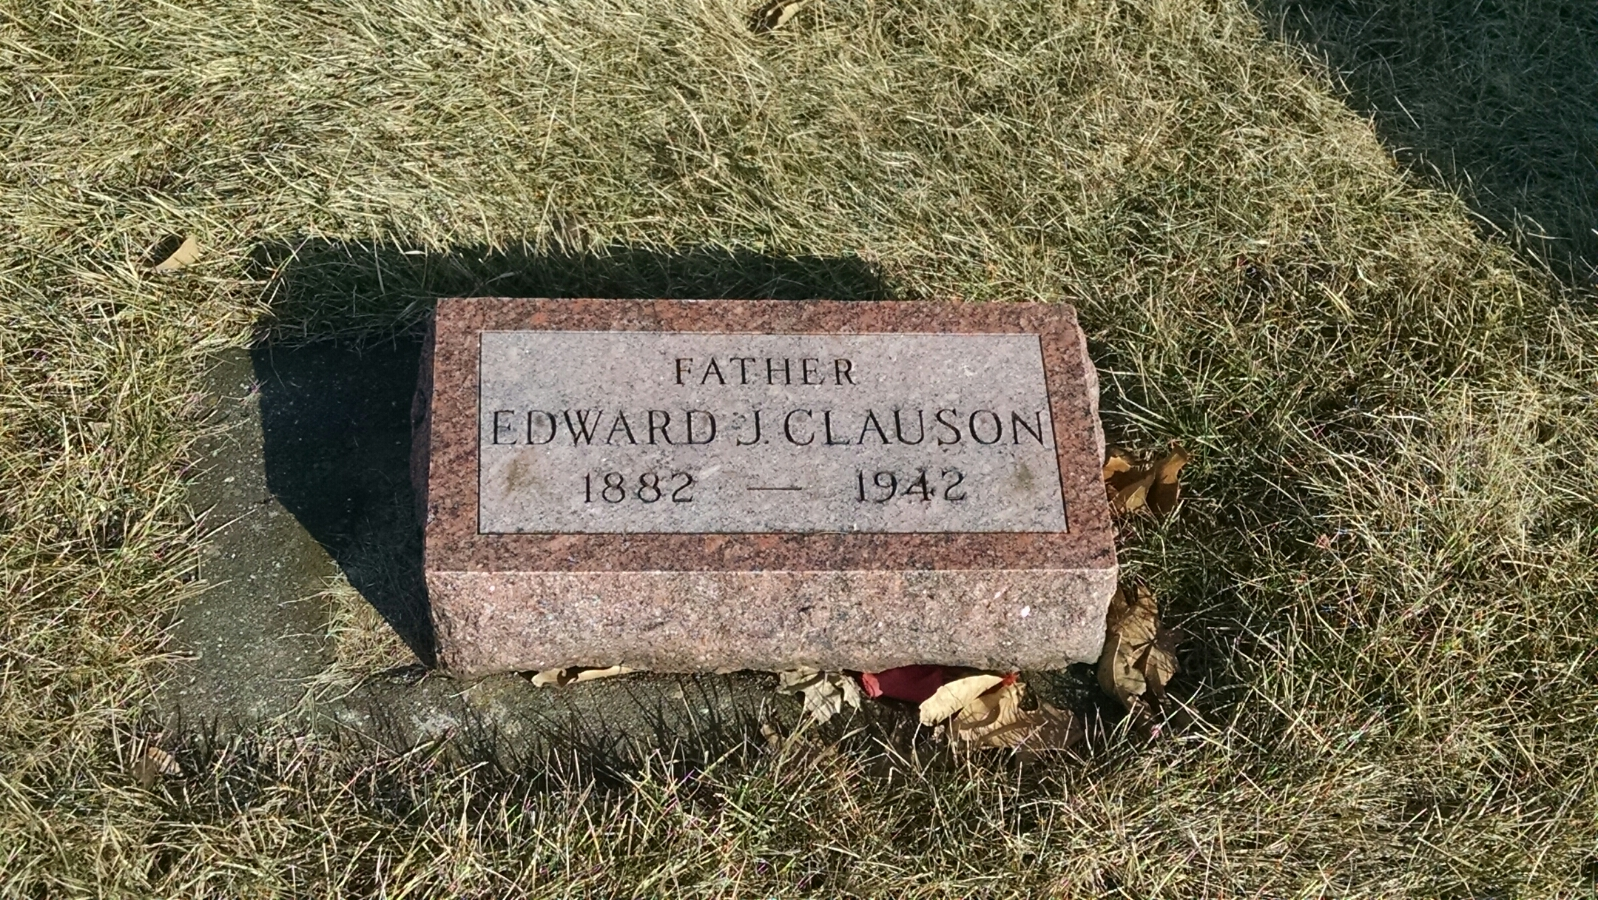 Edward John Clauson